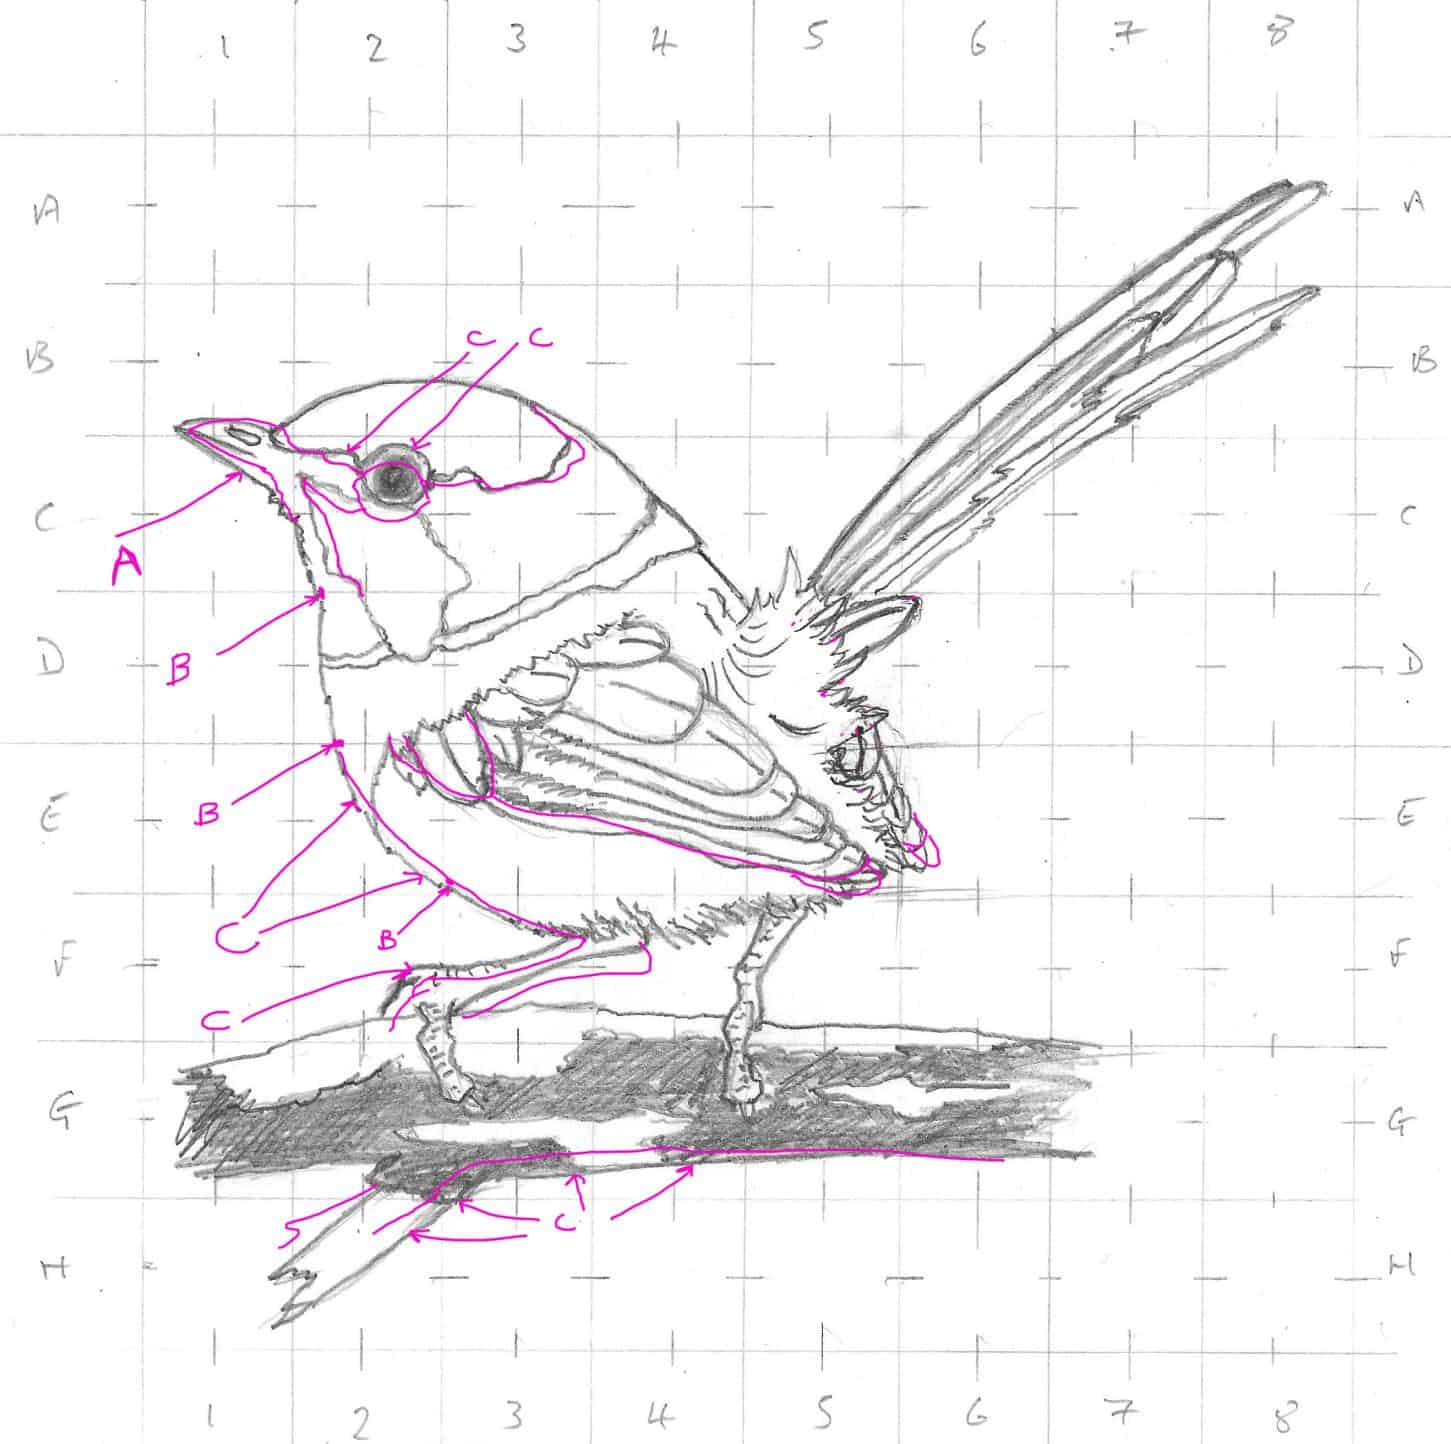 Drawing Buzzy Bees and a Little Blue Wren using the Grid